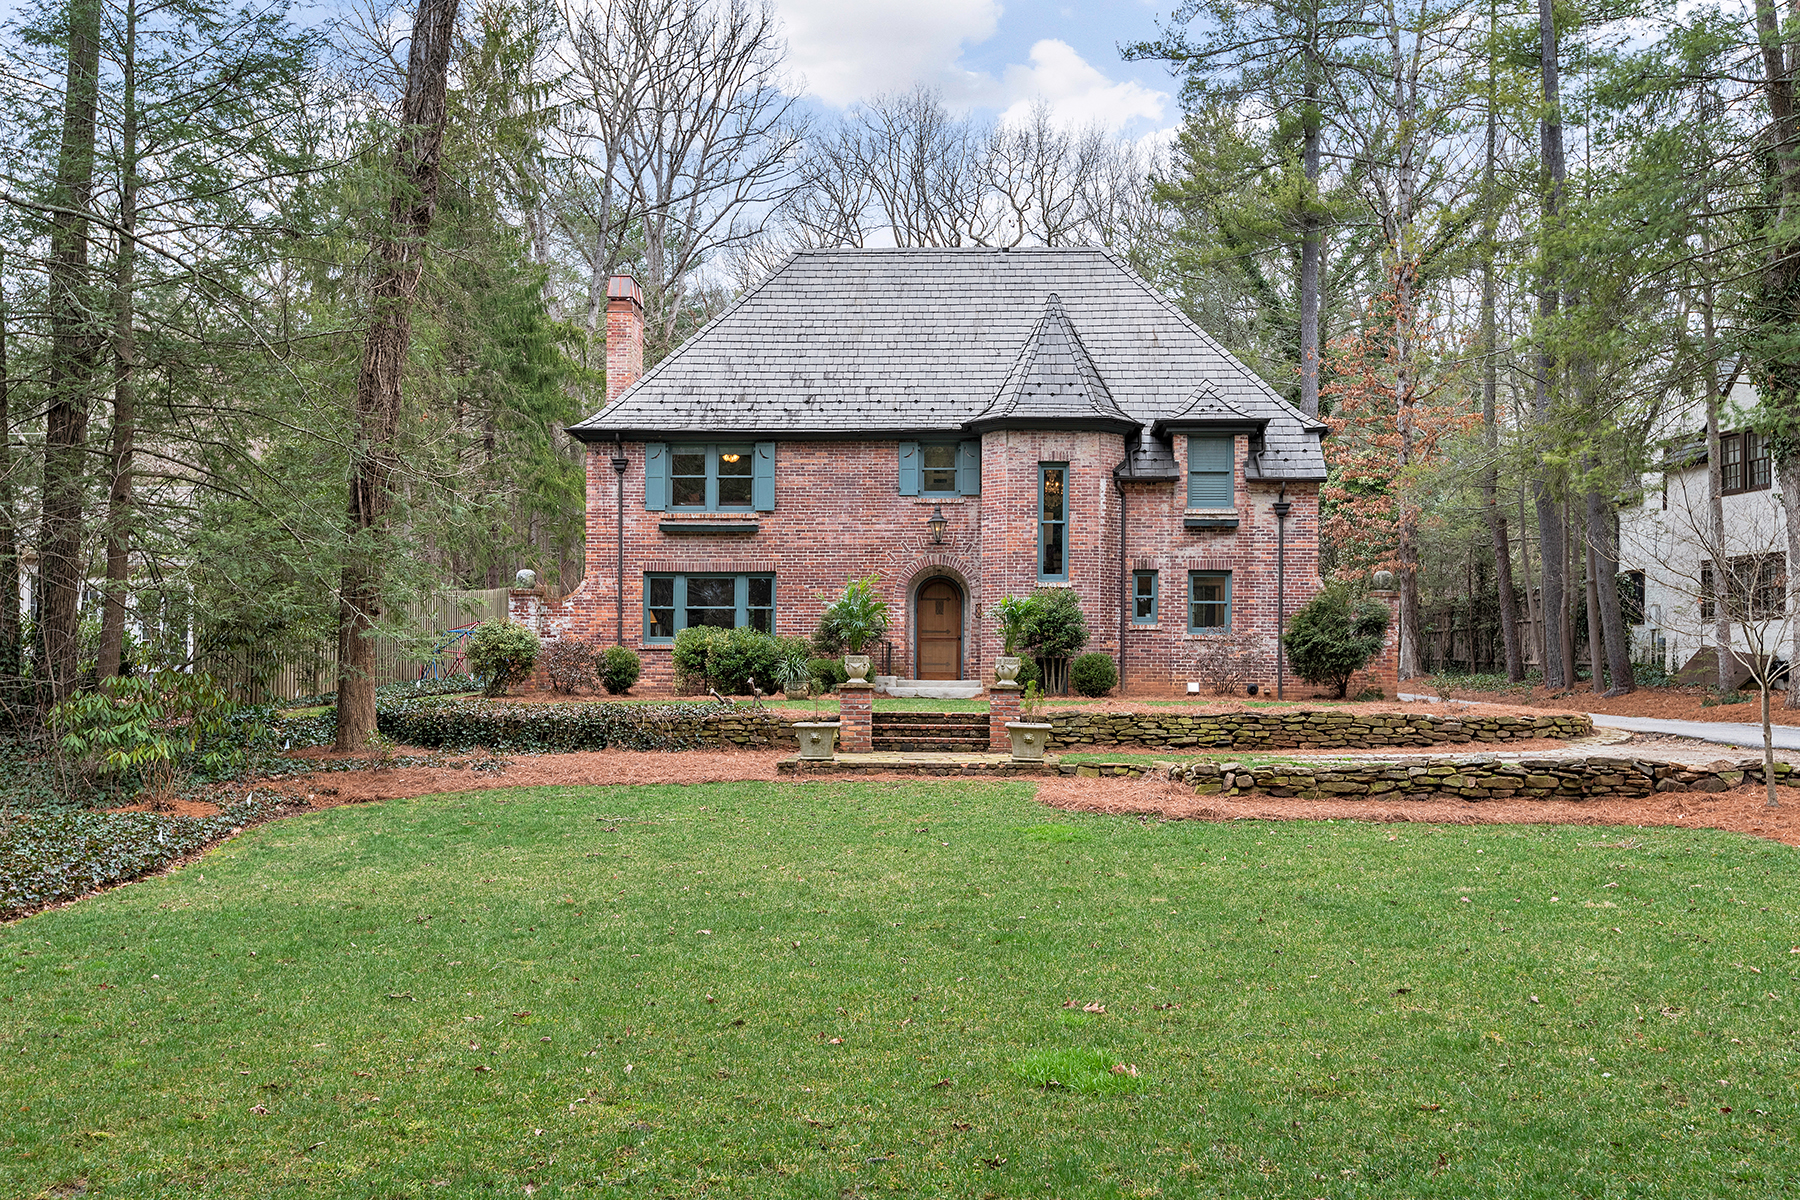 Single Family Home for Sale at MEMORABLE FRENCH NORMANDY COUNTRY HOME 375 Vanderbilt Rd, Asheville, North Carolina 28803 United States